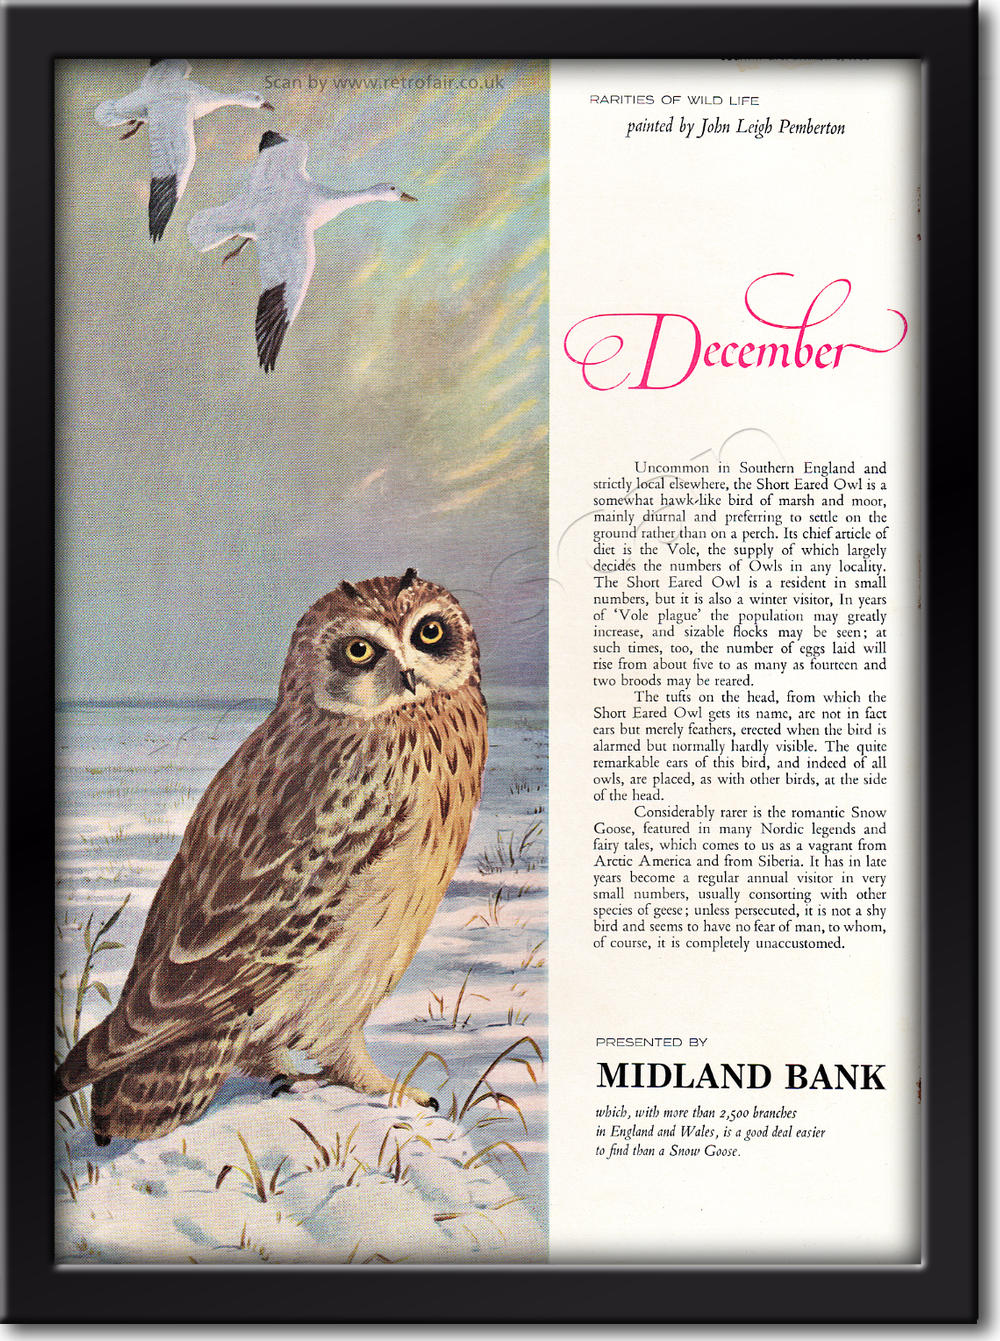 1964 vintage Midland Bank - December advert